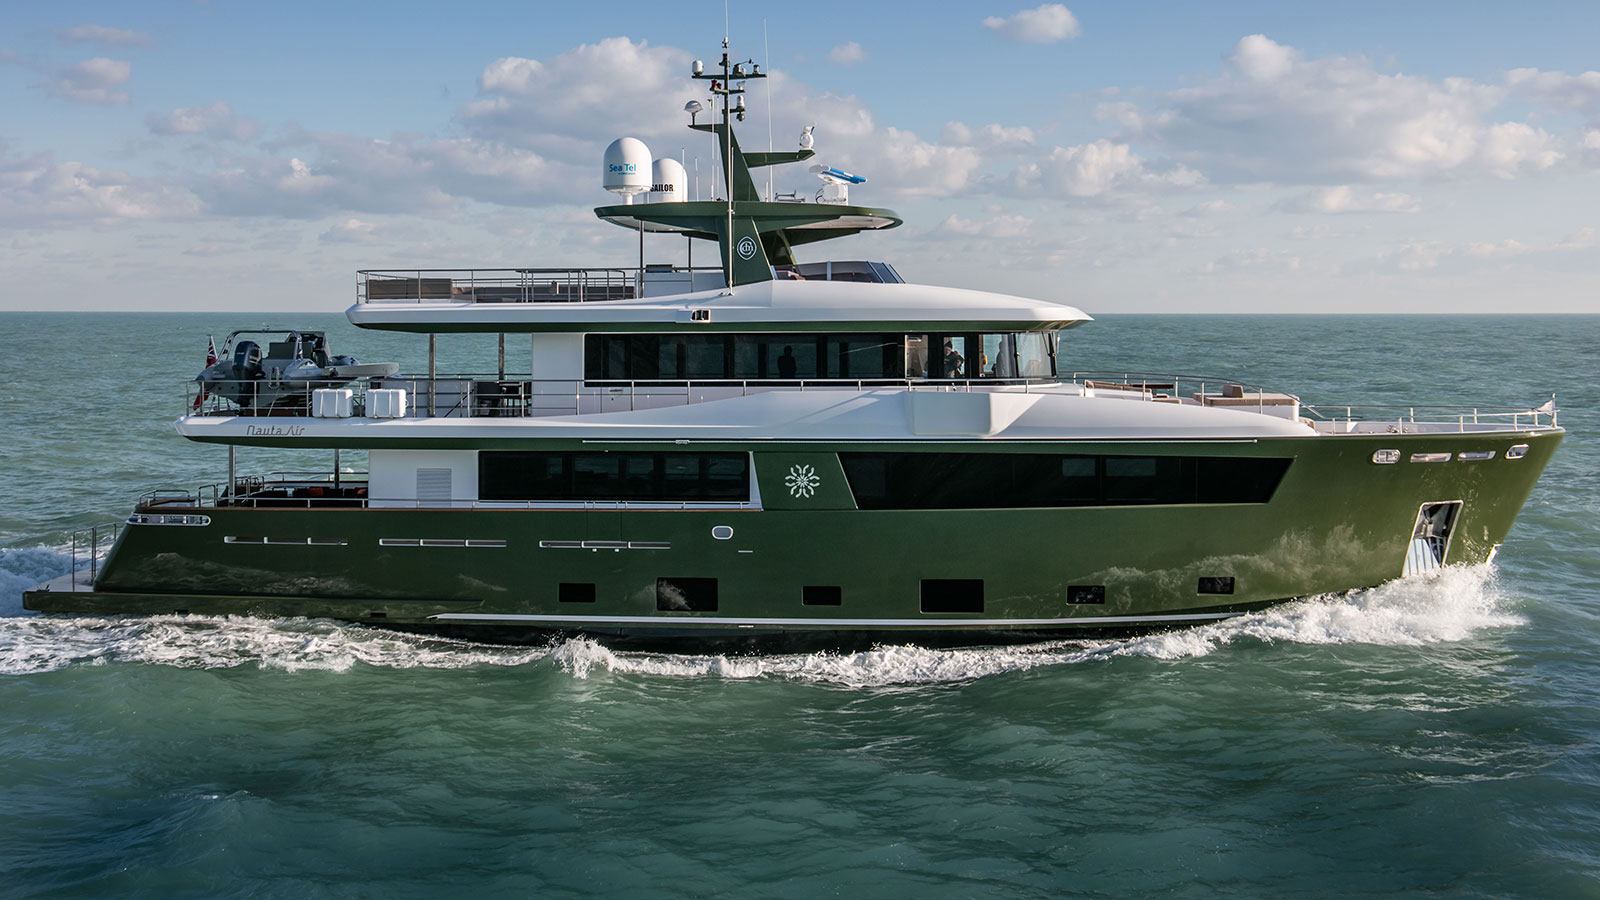 side-view-of-the-cantiere-delle-marche-nauta-air-111-yacht-hyhma